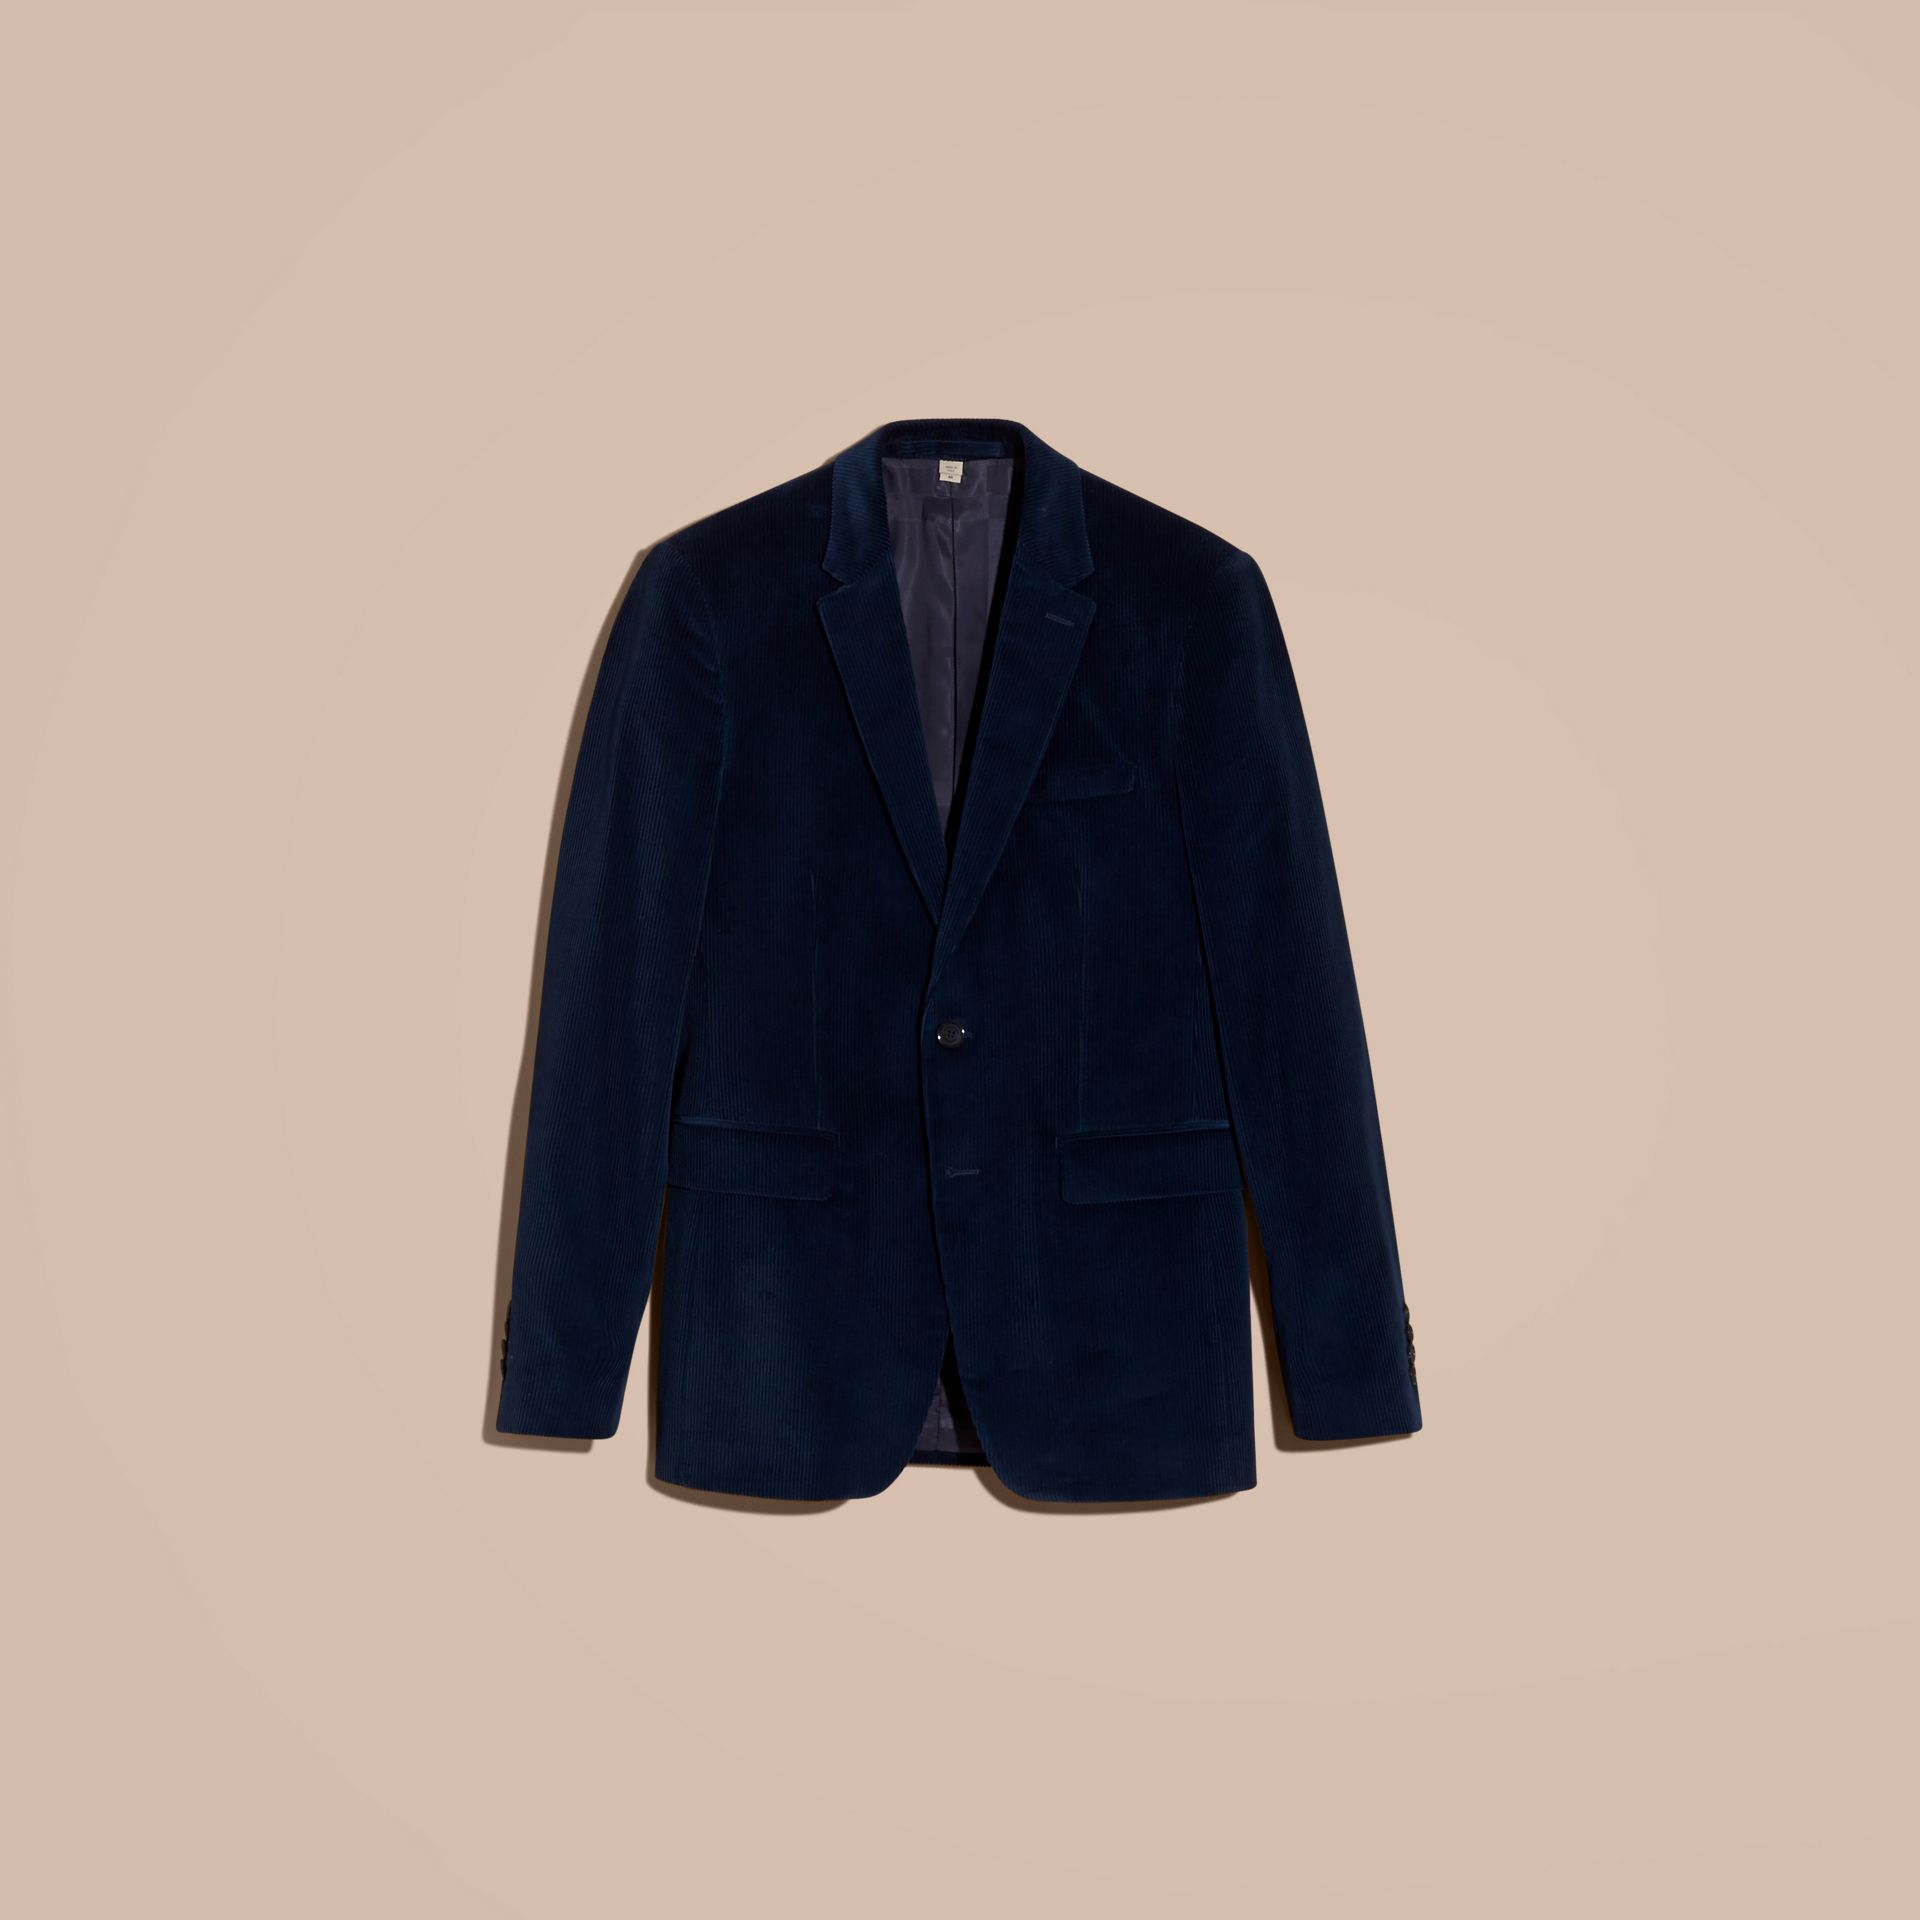 Navy Slim Fit Cotton Corduroy Jacket Navy - gallery image 4